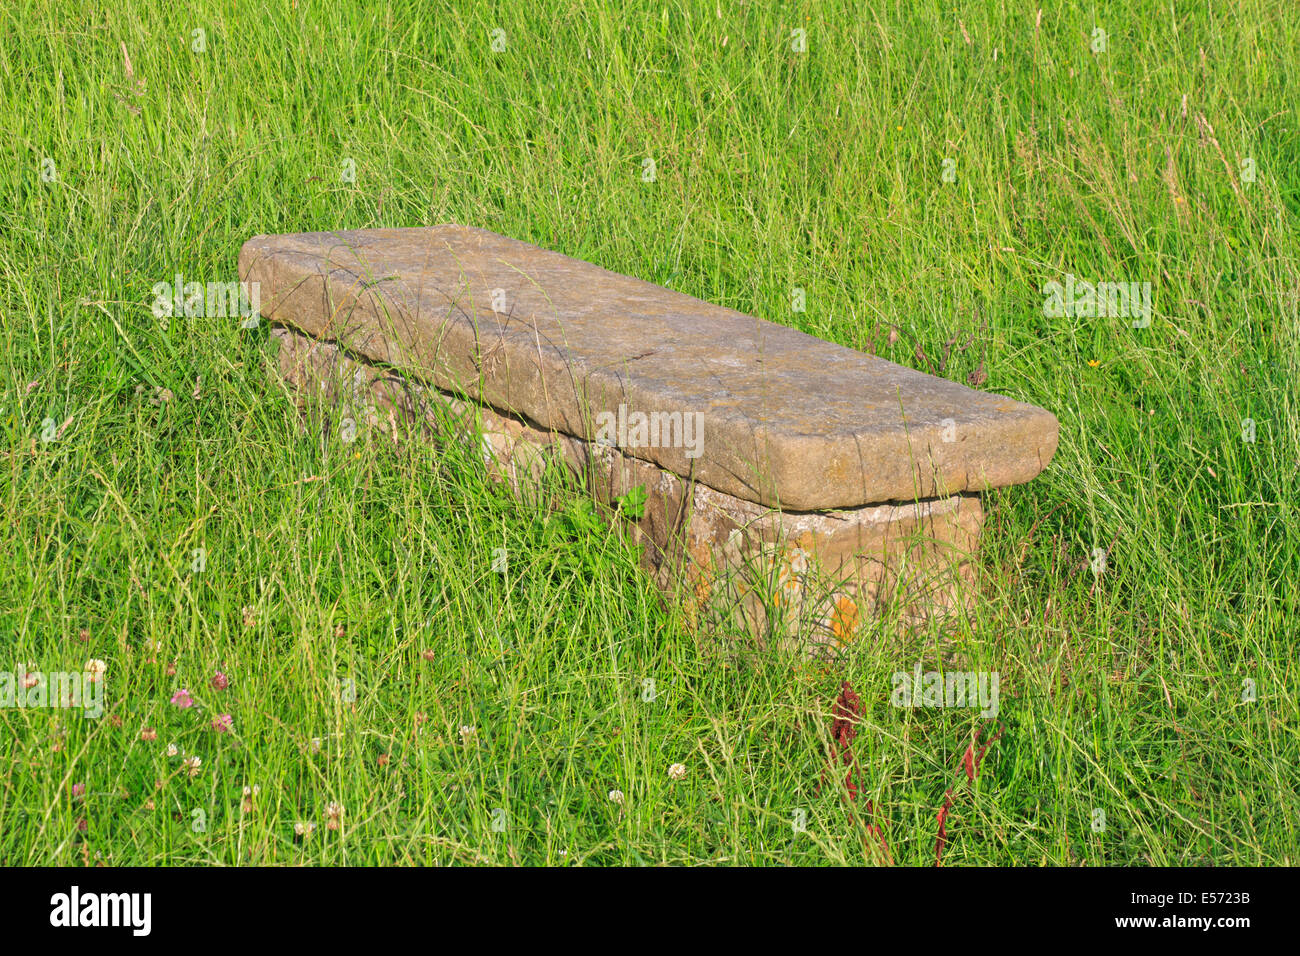 Humphrey Merrill's tomb in Eyam plague village, Derbyshire, Peak District National Park, England, UK. - Stock Image